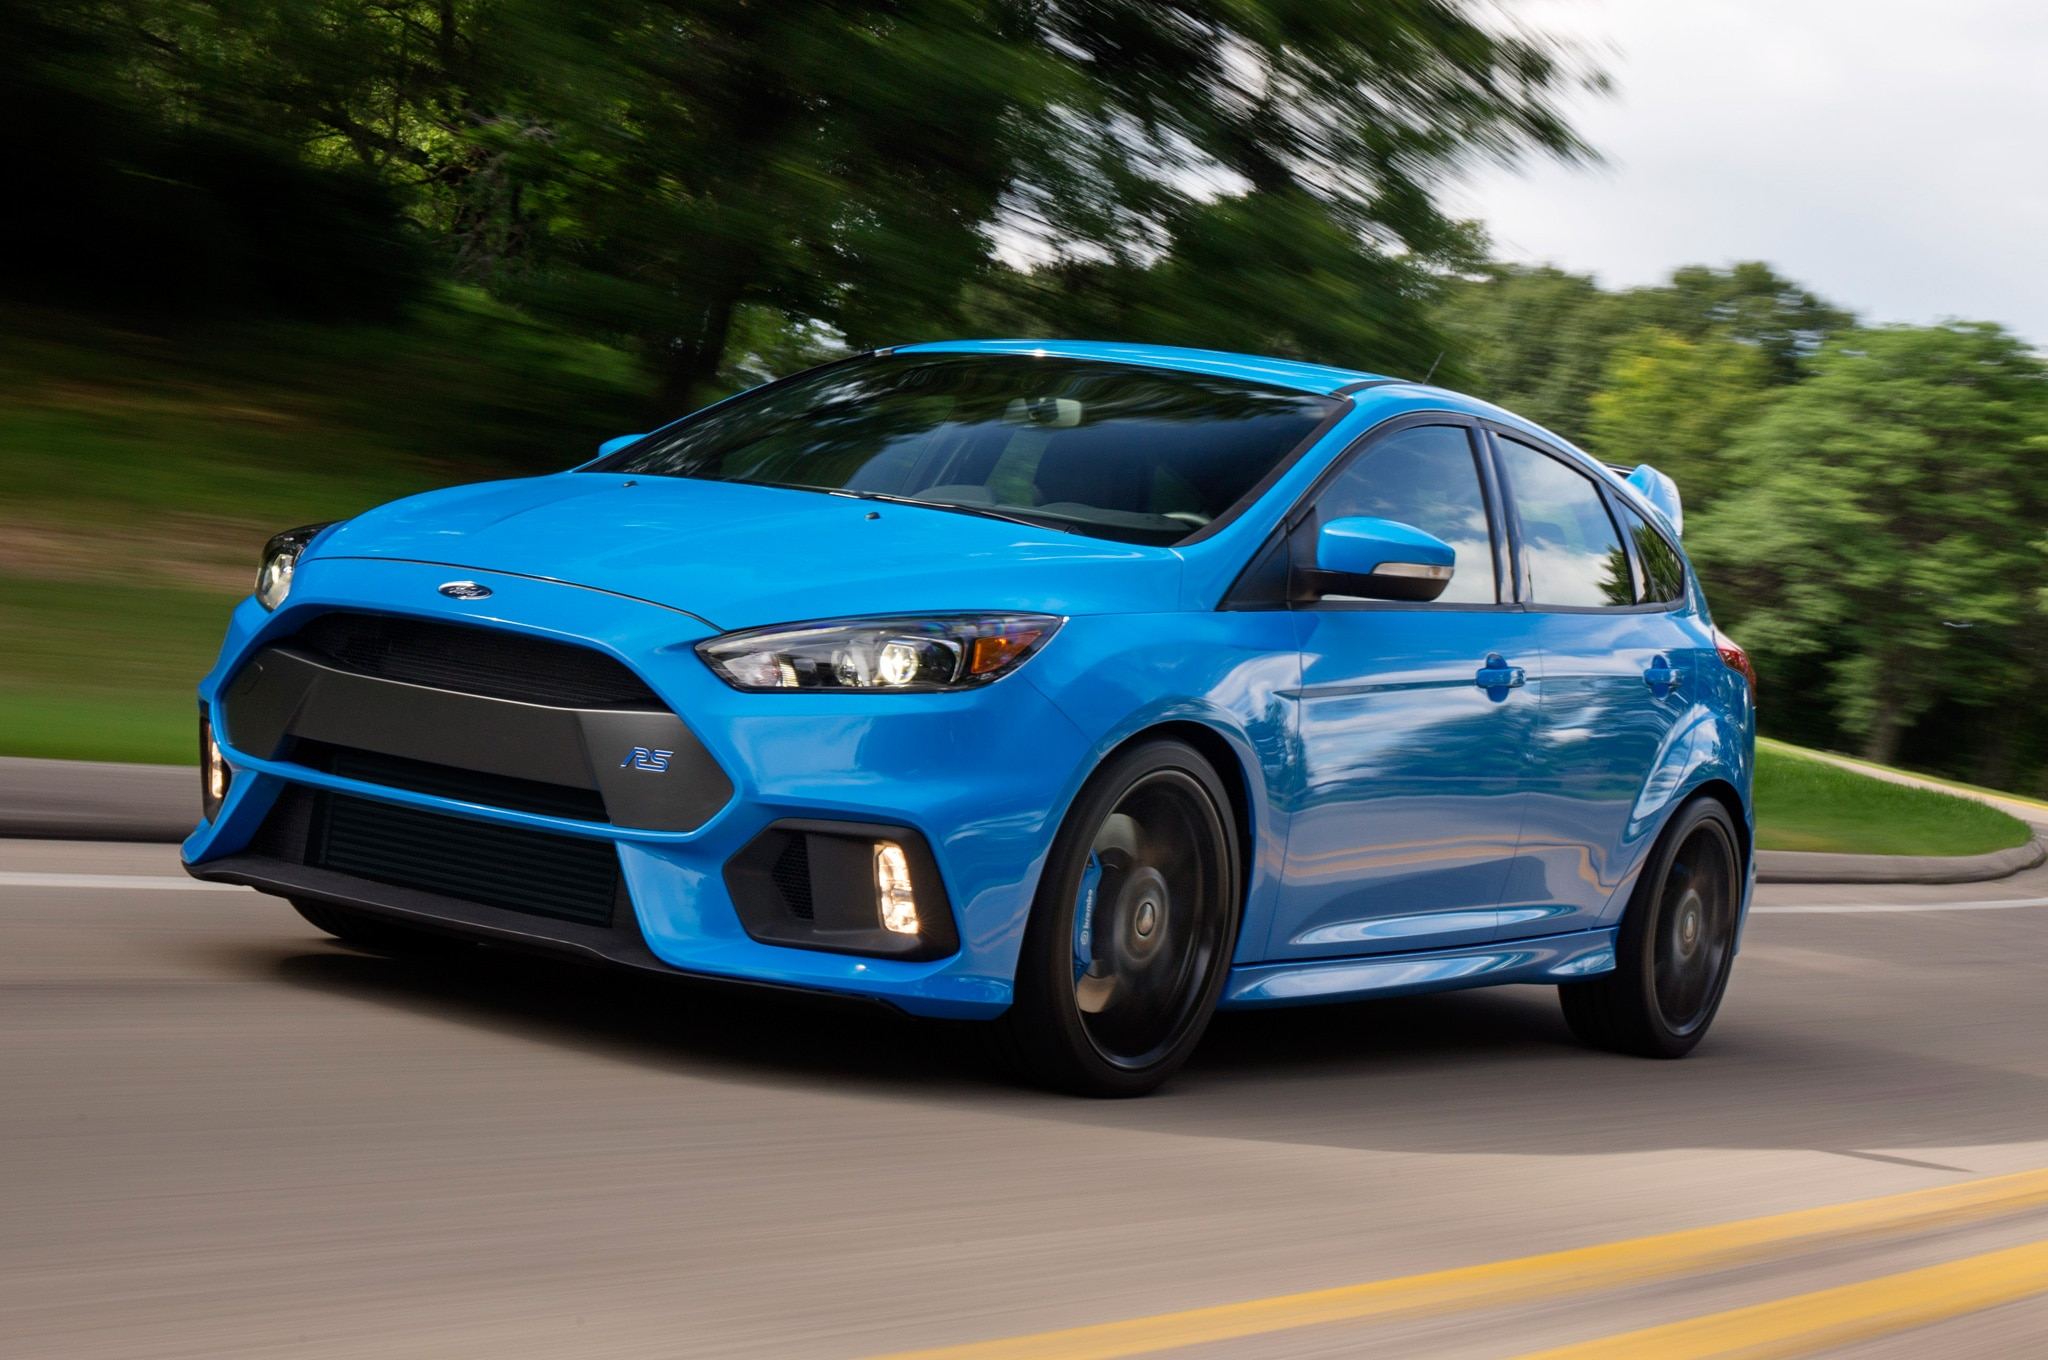 ford focus rs wheels ford focus hatchback ii images driving the new hot hagemeier ford ford. Black Bedroom Furniture Sets. Home Design Ideas